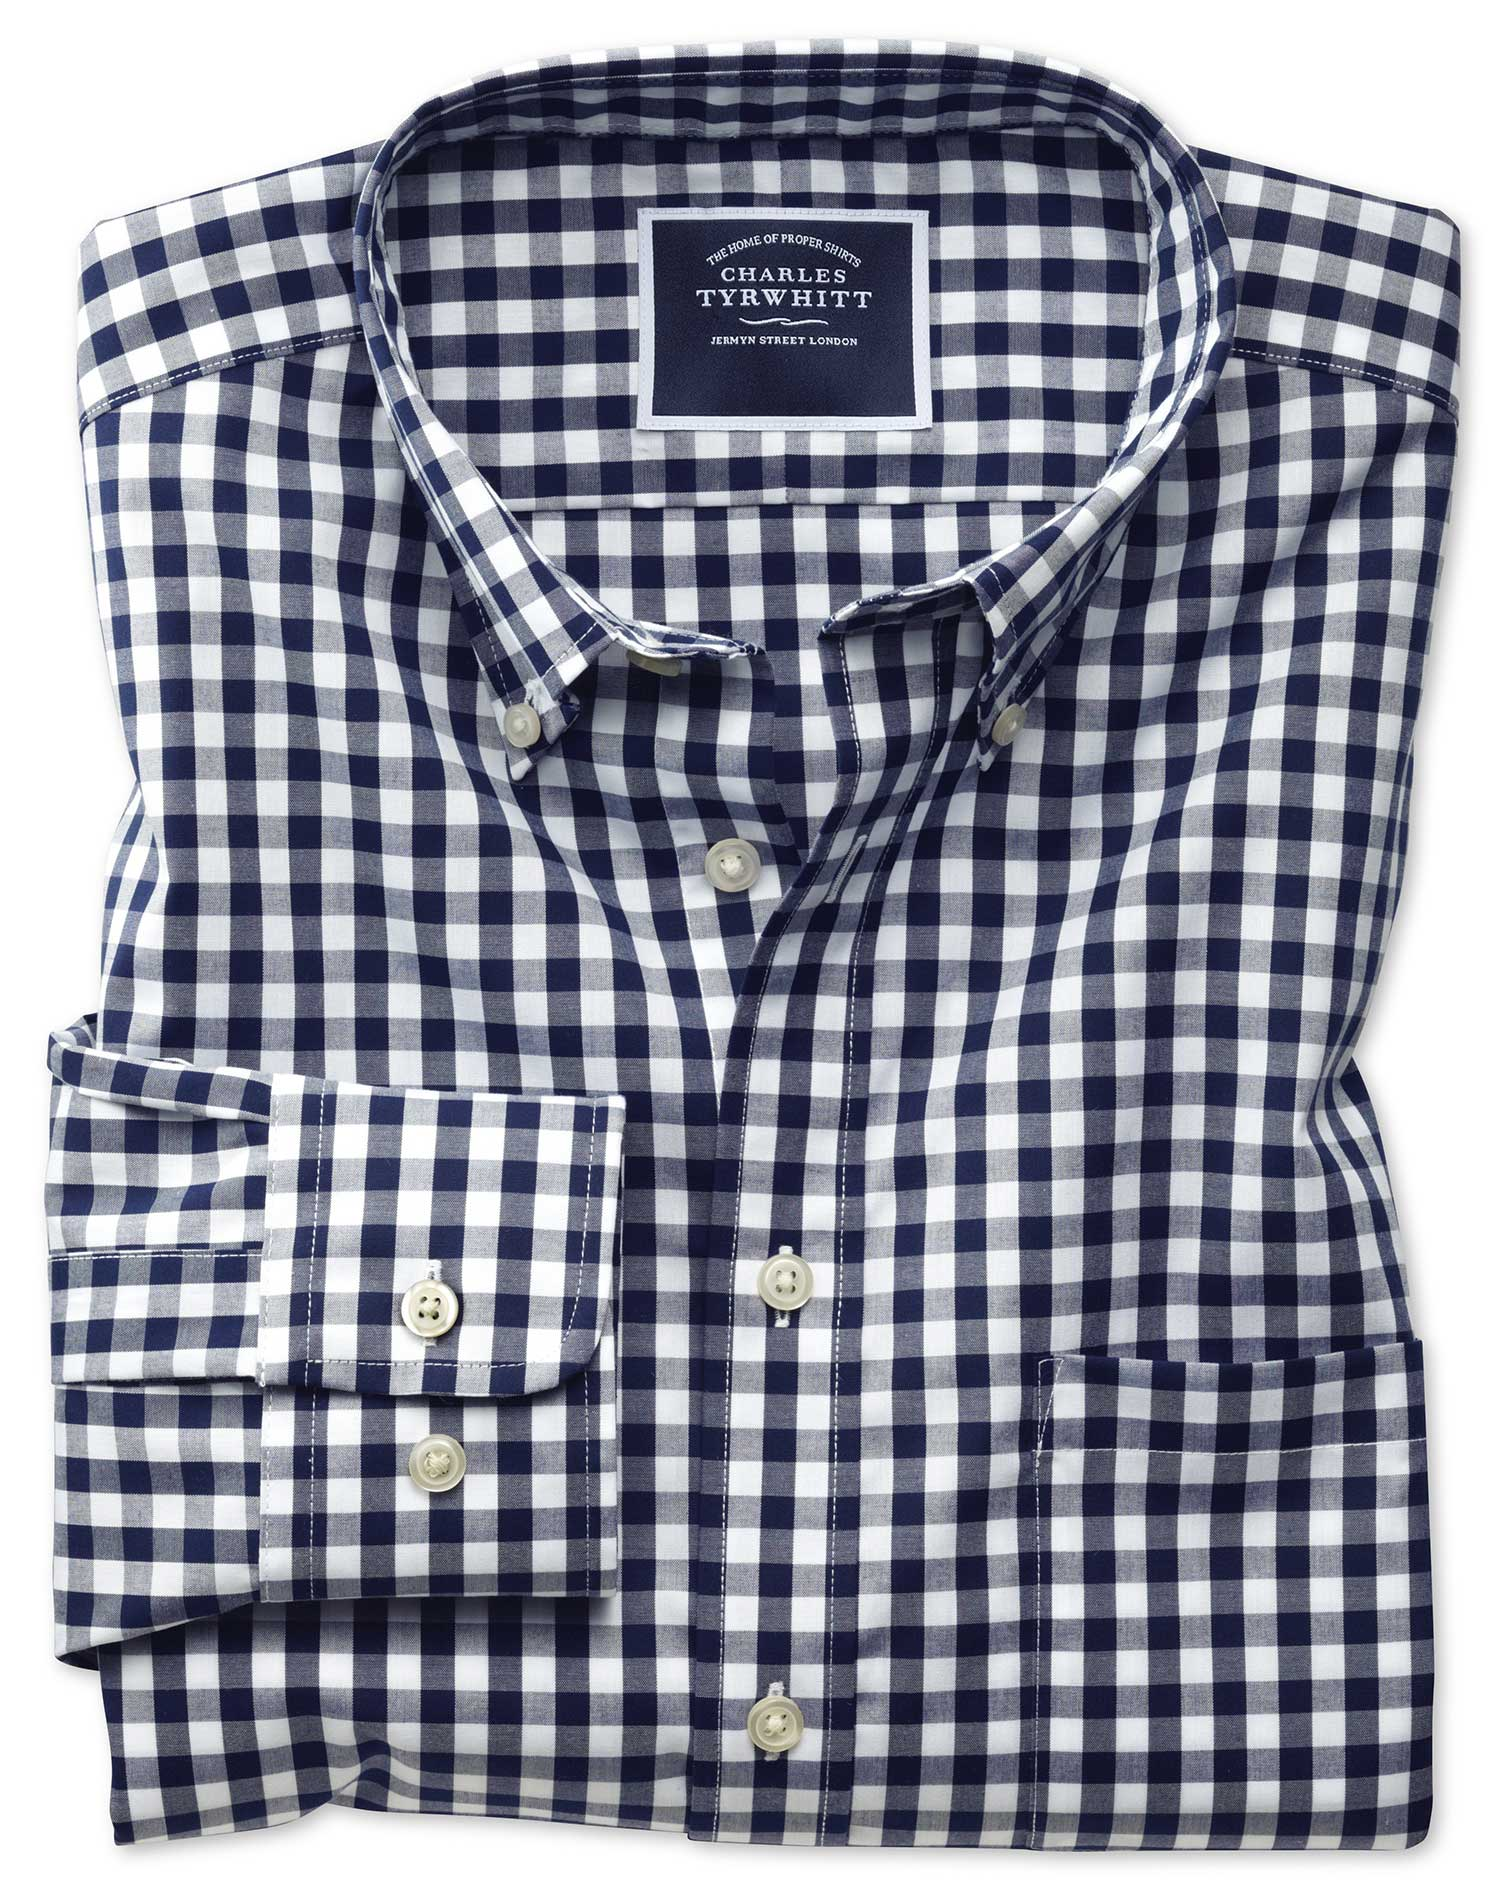 Extra Slim Fit Button-Down Non-Iron Poplin Navy Blue Gingham Cotton Shirt Single Cuff Size XXL by Ch